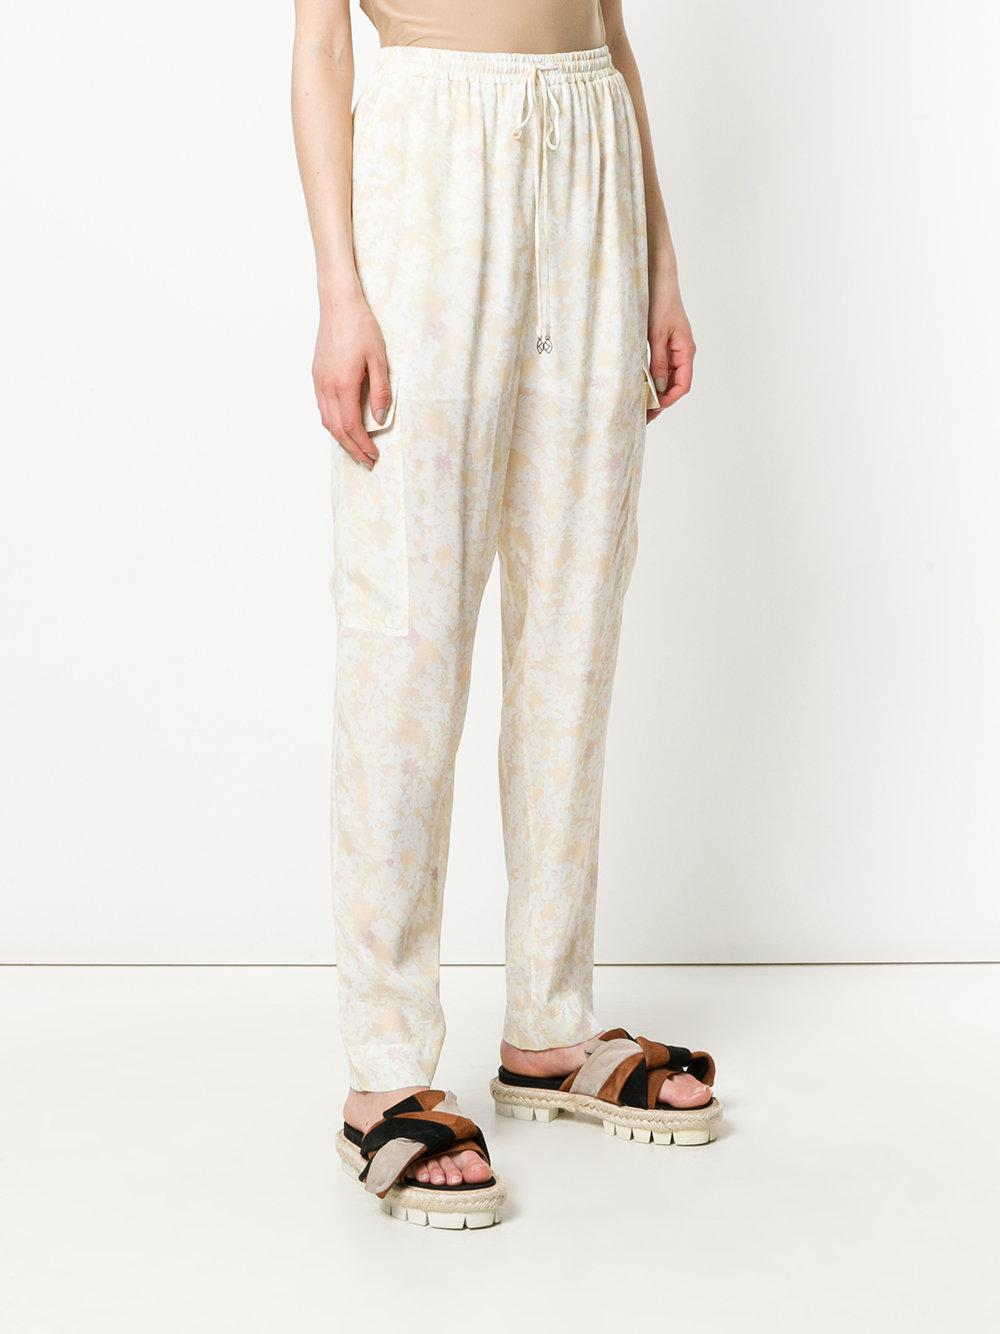 See By Chloé floral print relaxed trousers Outlet Latest Outlet Get To Buy UprH1bpZM